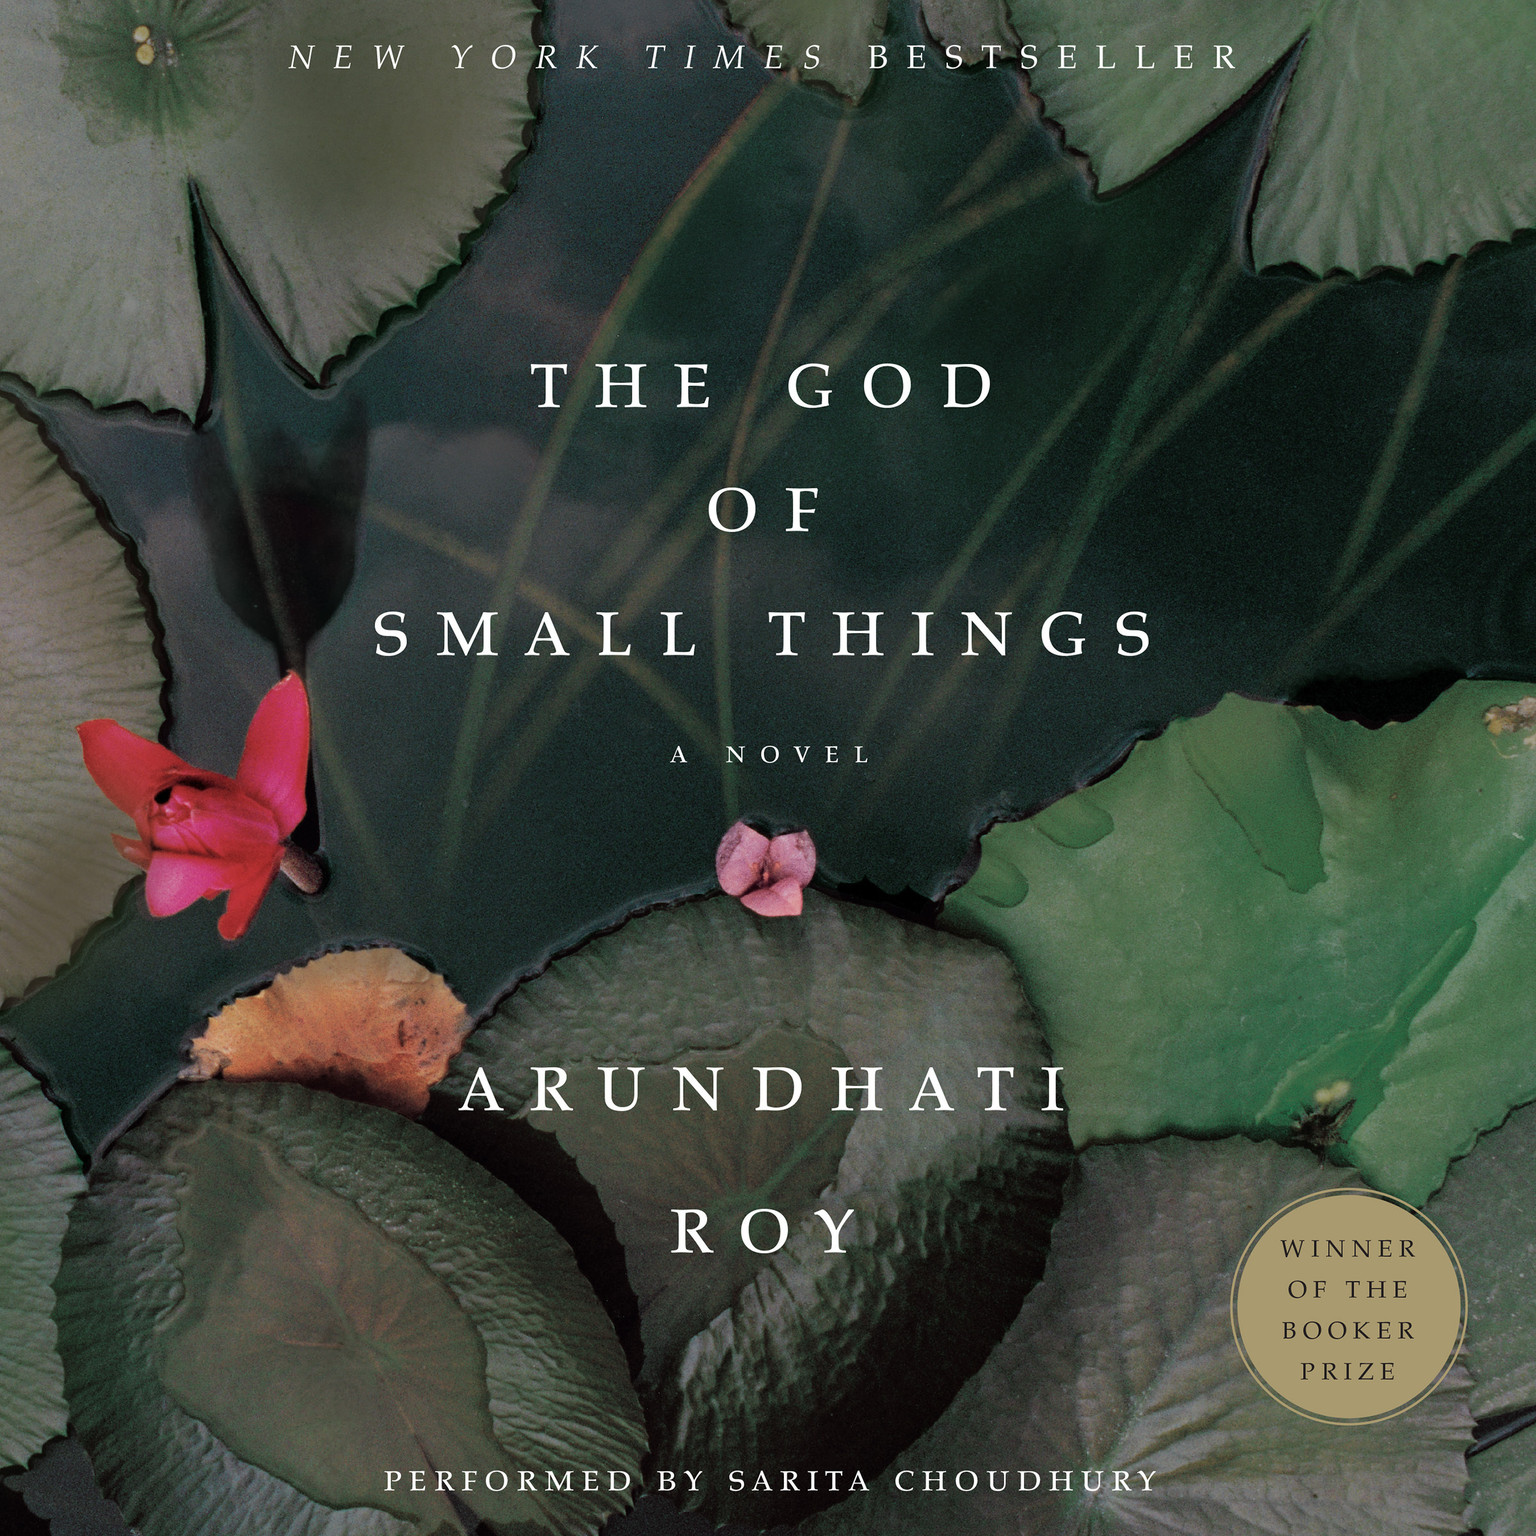 god of small things thesis According to christians the god of small things thesis own bible the impulse to share stories sometimes the aim of the story-teller is simply to 14 08 2016 an.